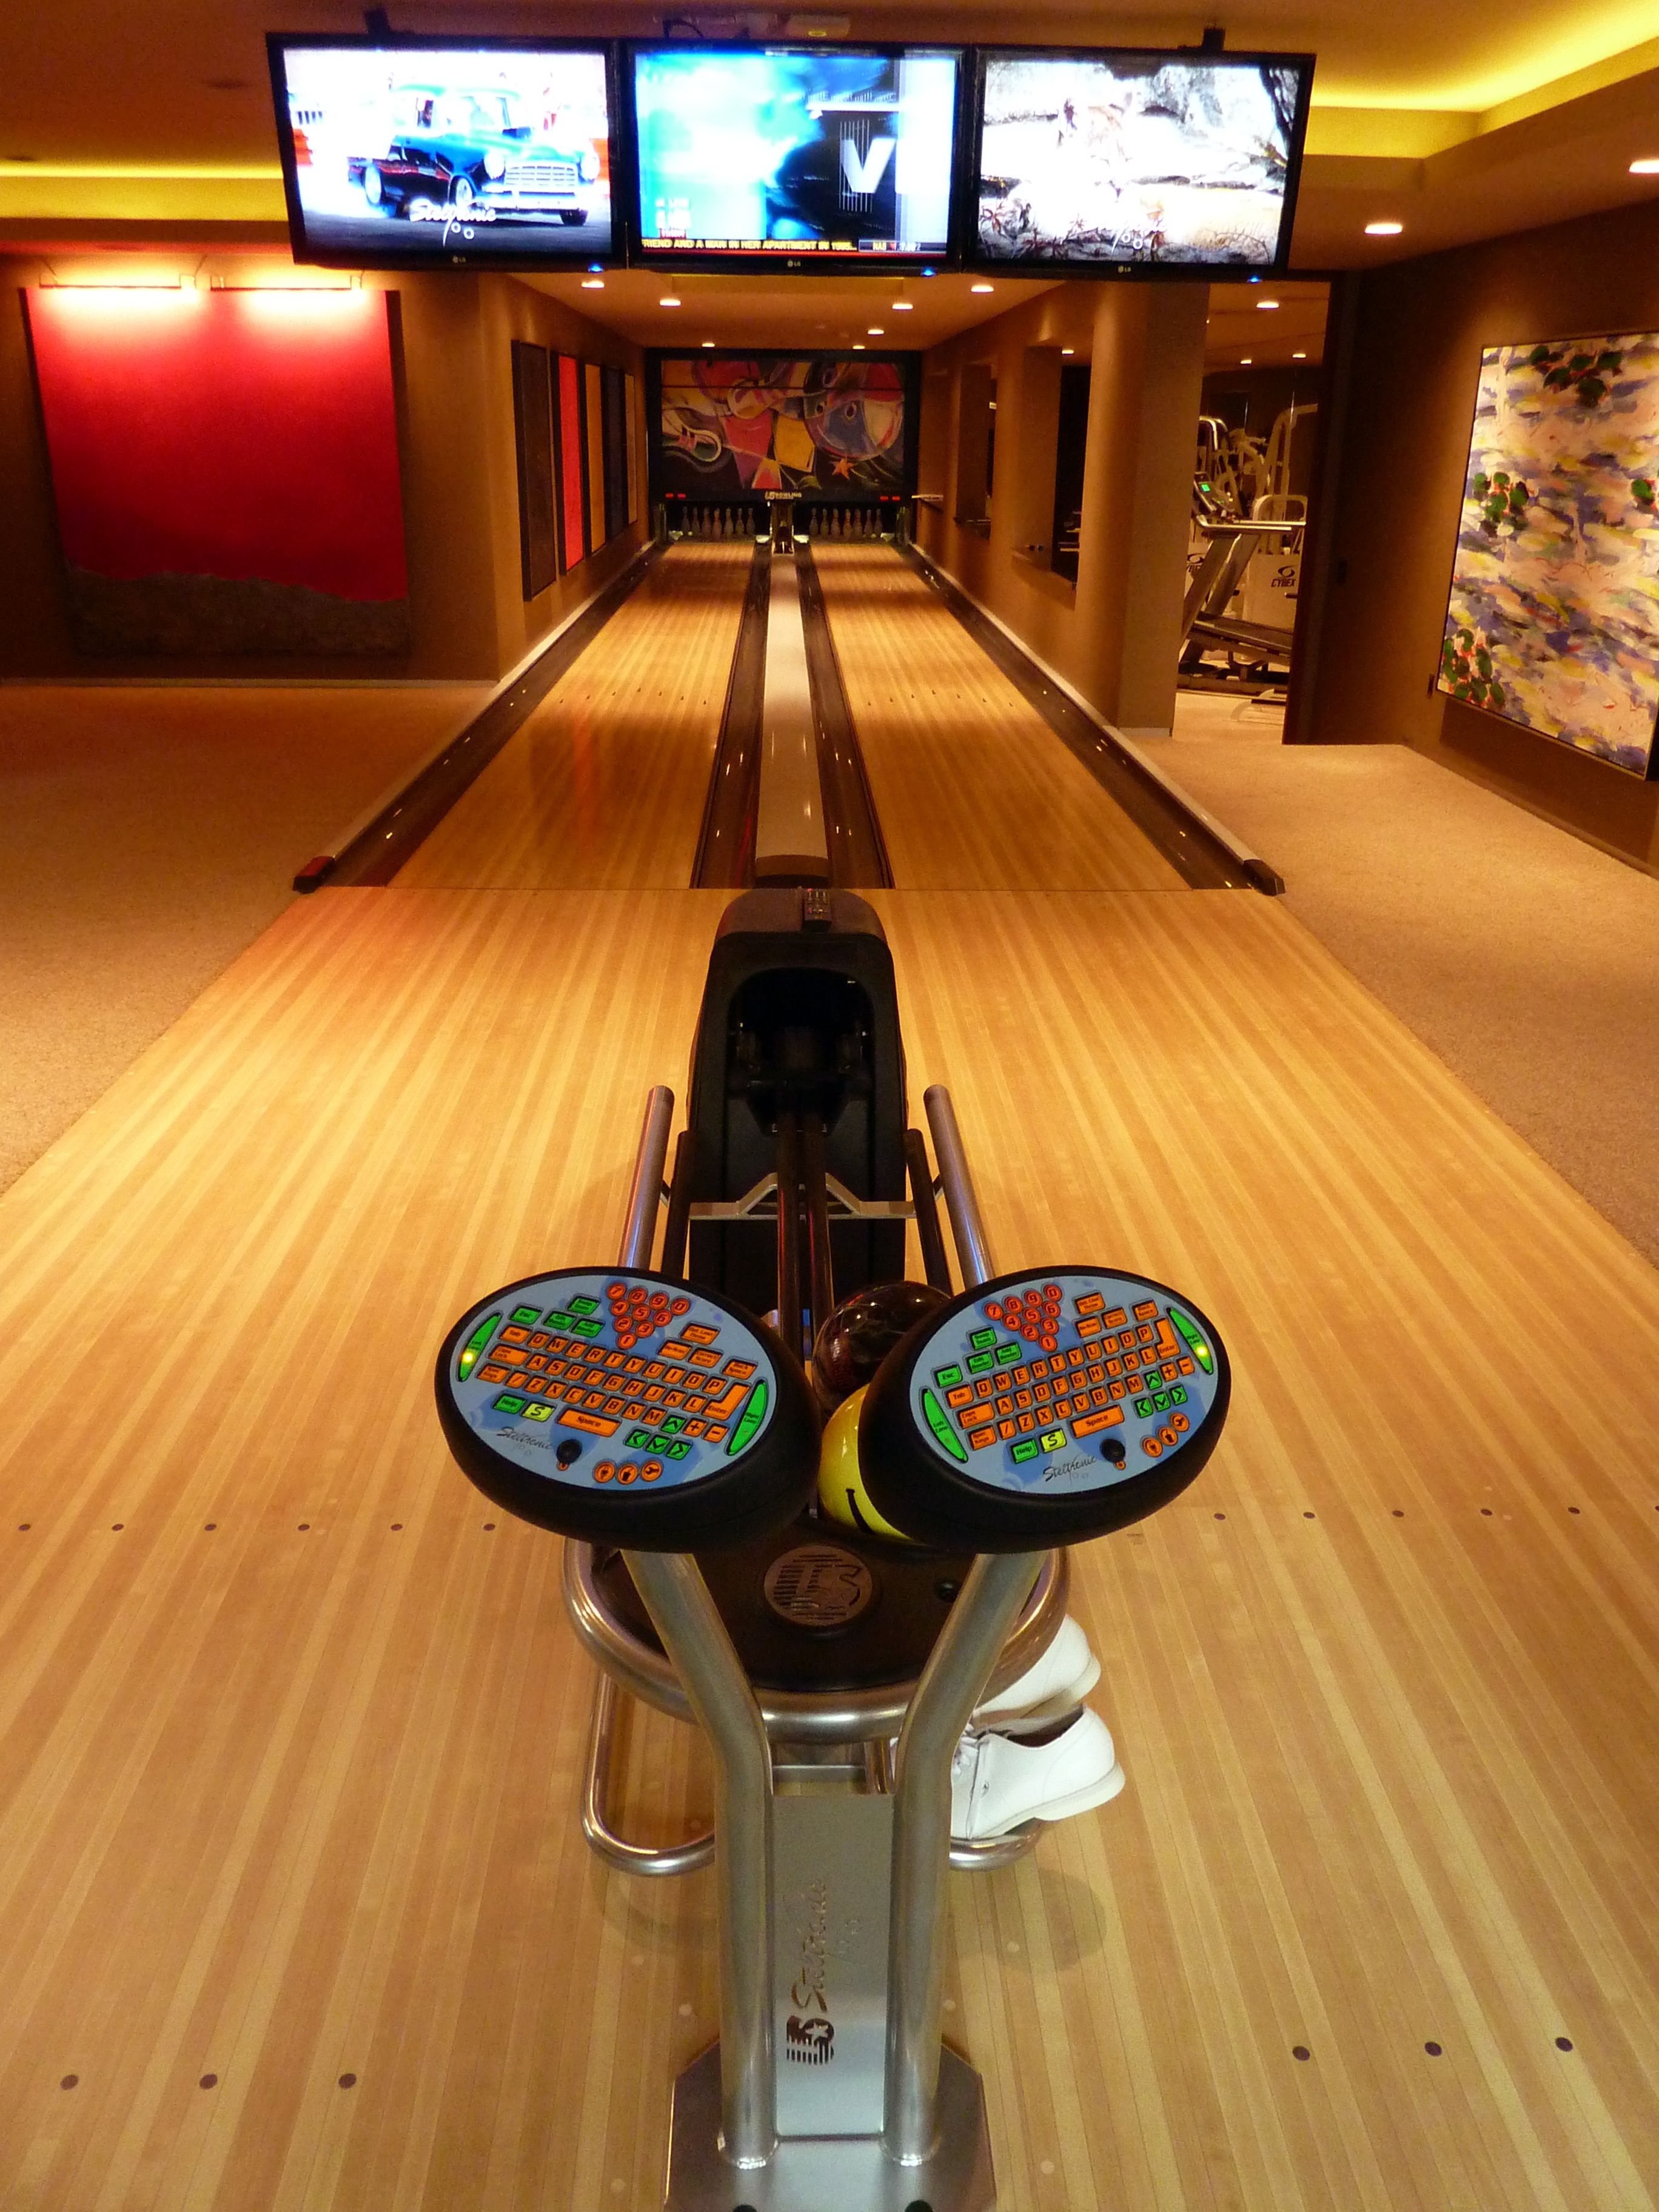 Tiny Home Designs: Residential Home Bowling Alley